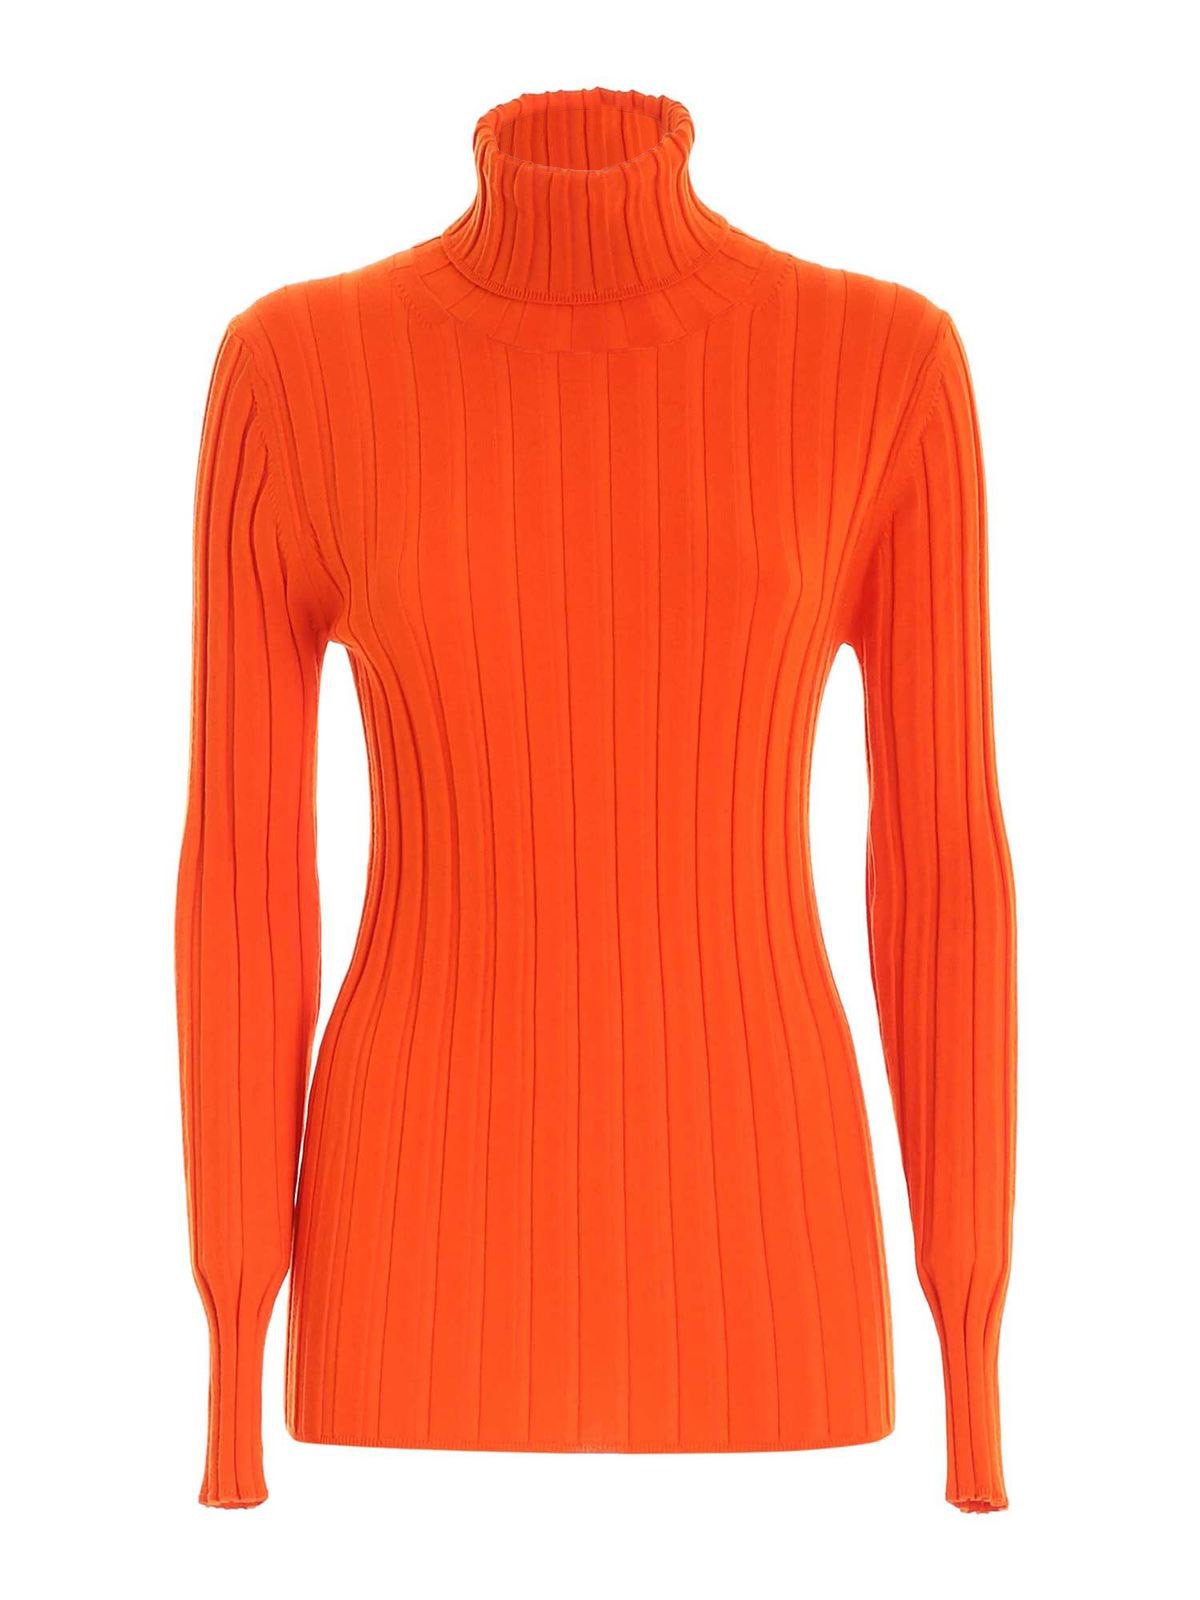 Aspesi WOOL TURTLENECK IN ORANGE